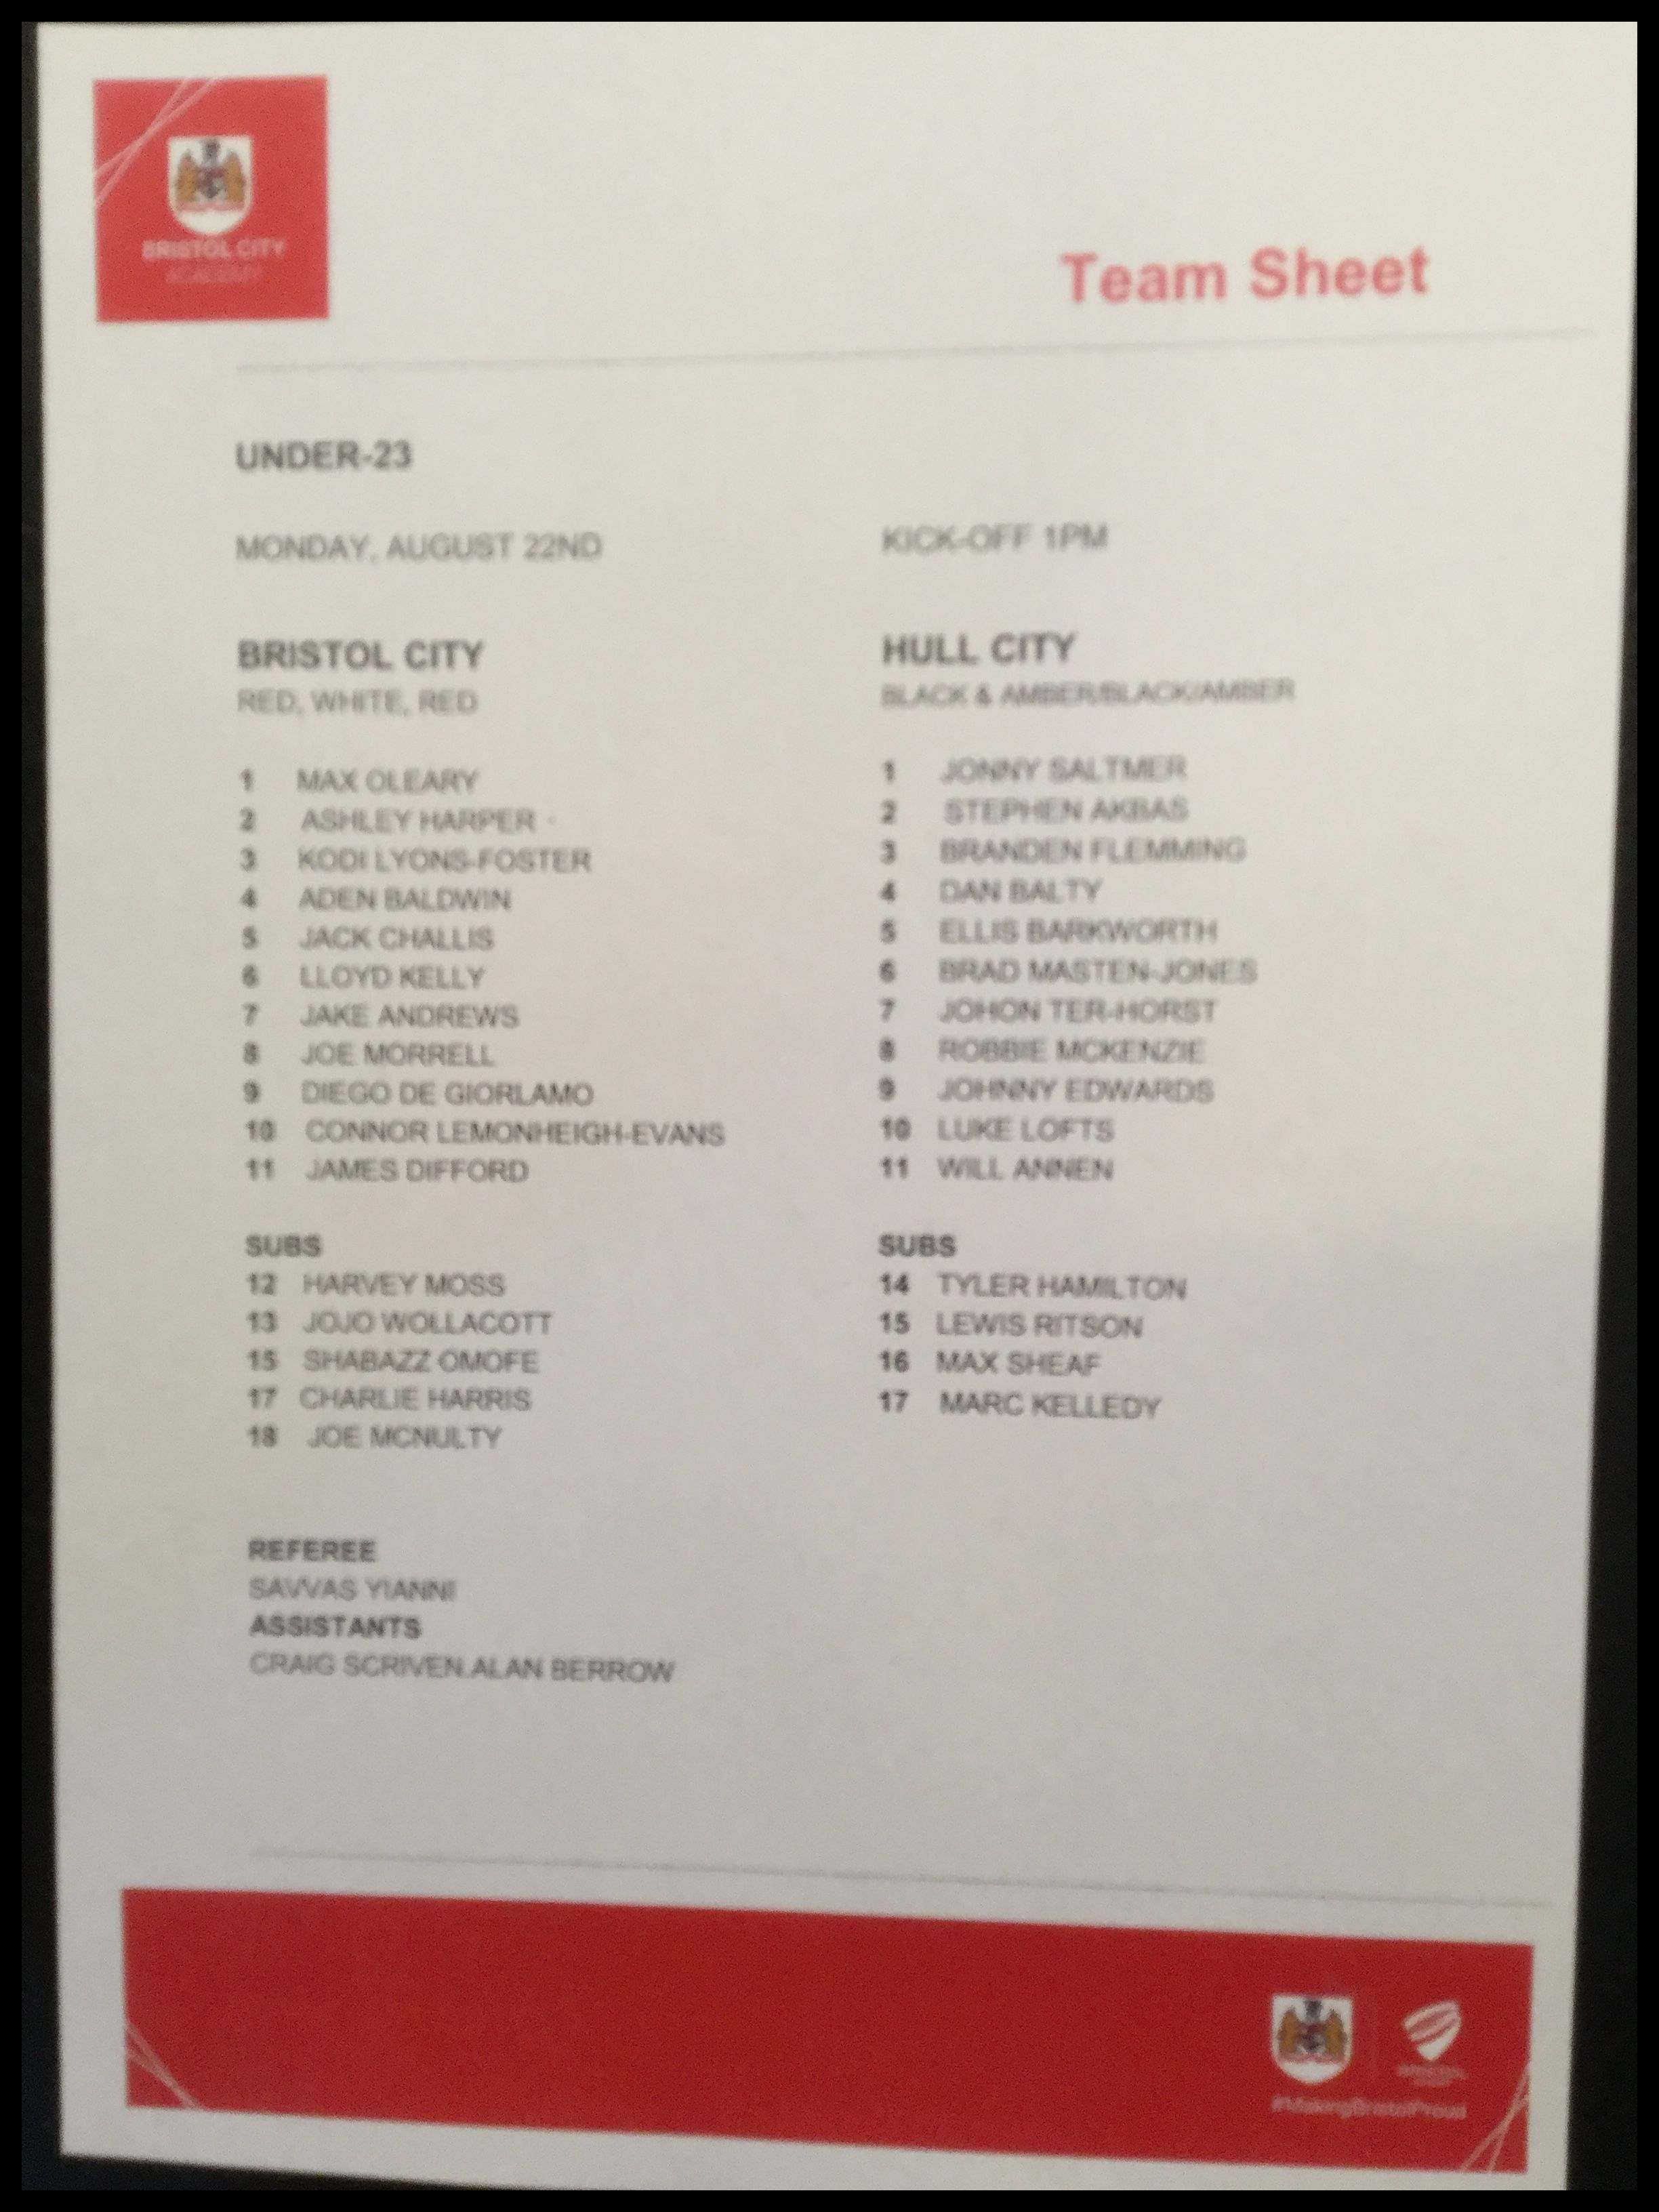 Bristol City v Hull City 22-08-16 Team Sheet